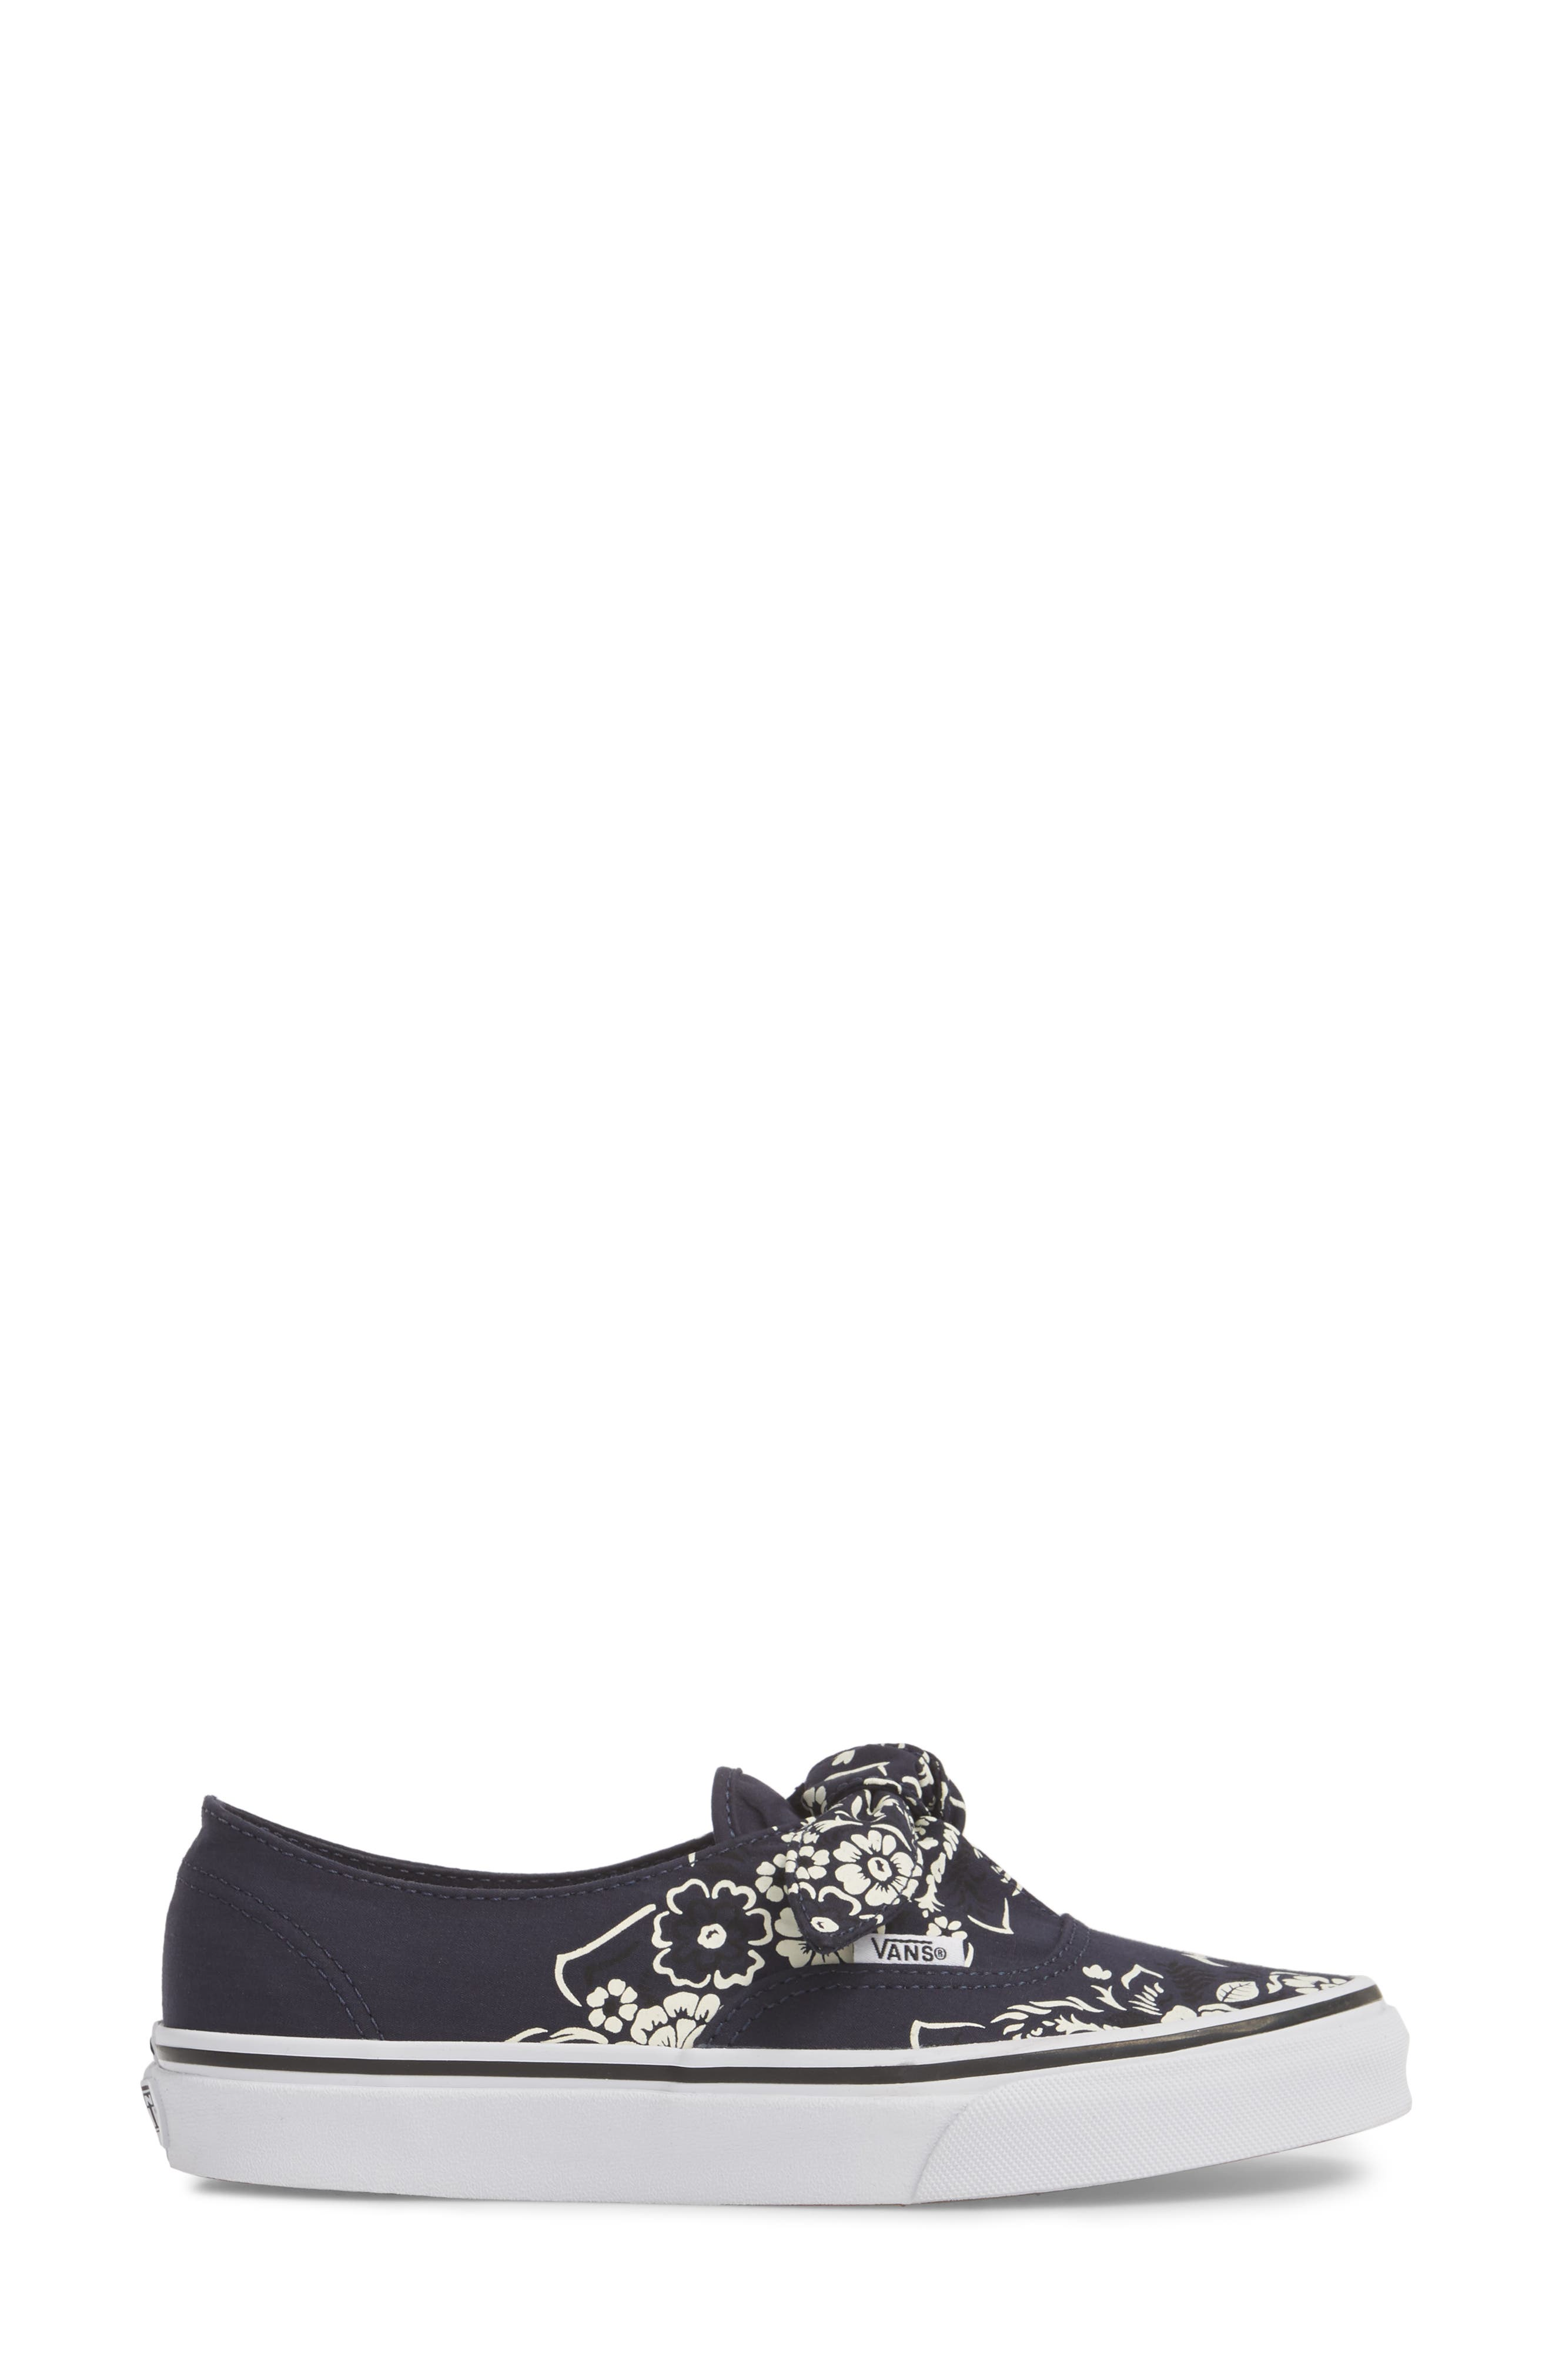 UA Authentic Knotted Floral Bandana Slip-On Sneaker,                             Alternate thumbnail 3, color,                             PARISIAN NIGHT/ TRUE WHITE